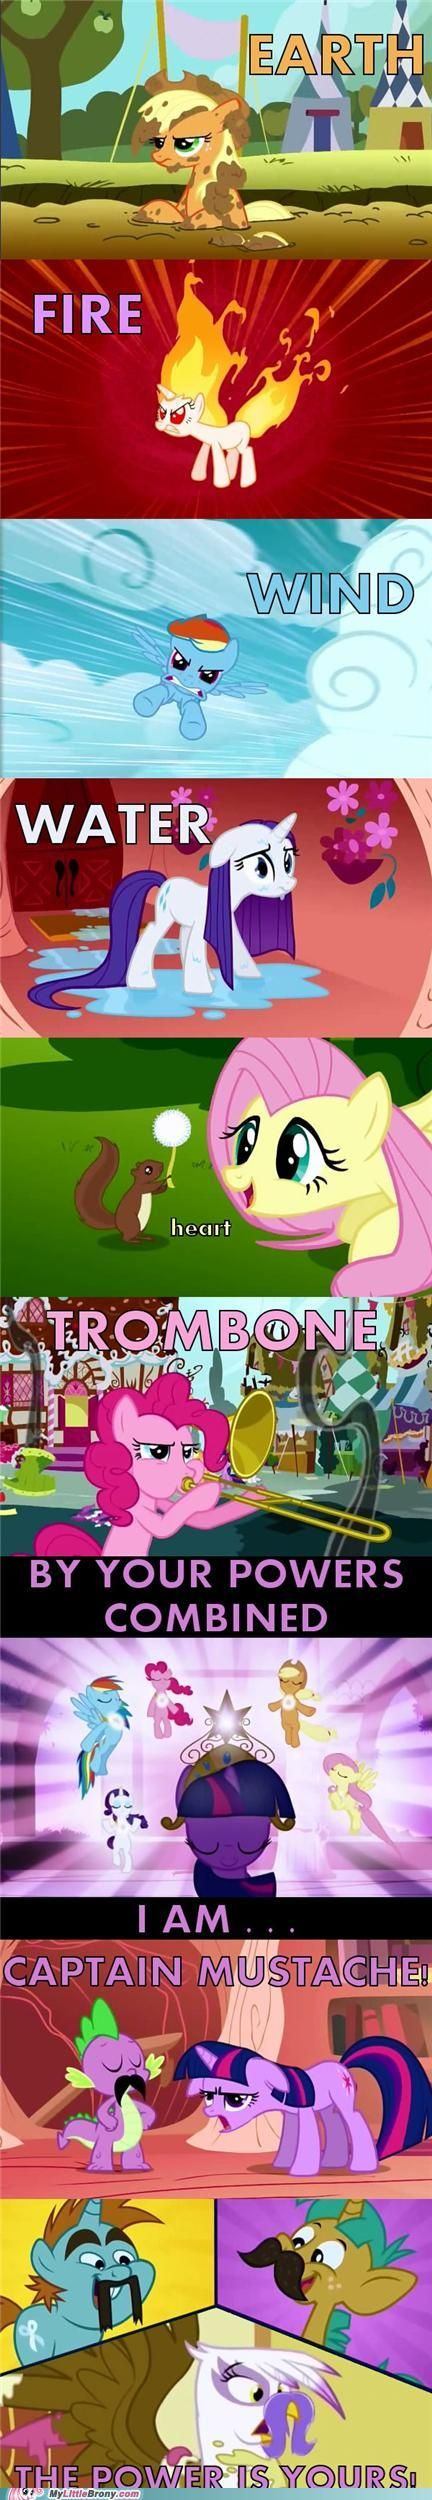 The Element of Trombone? Plus I see hints of a Avatar reference...:3